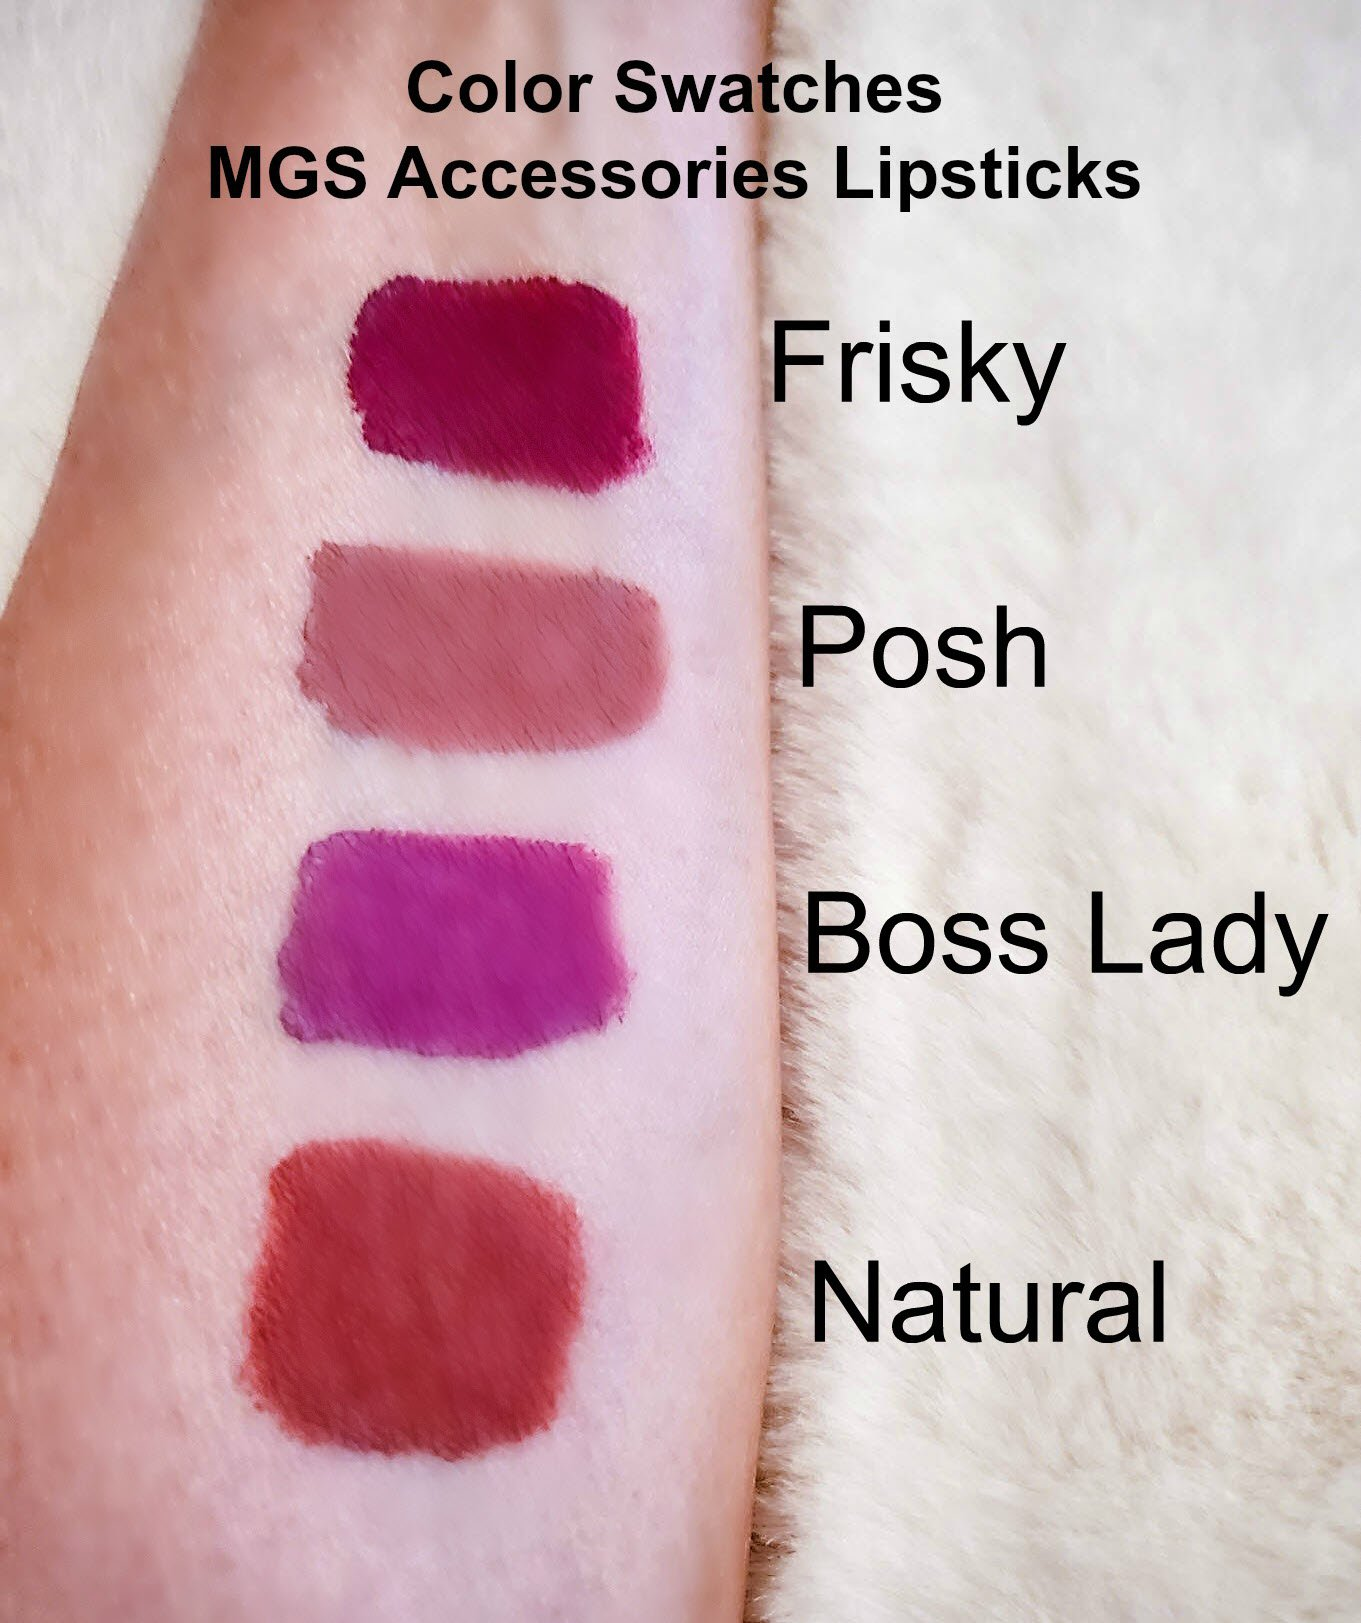 MGS Accessories Lipstick Swatches